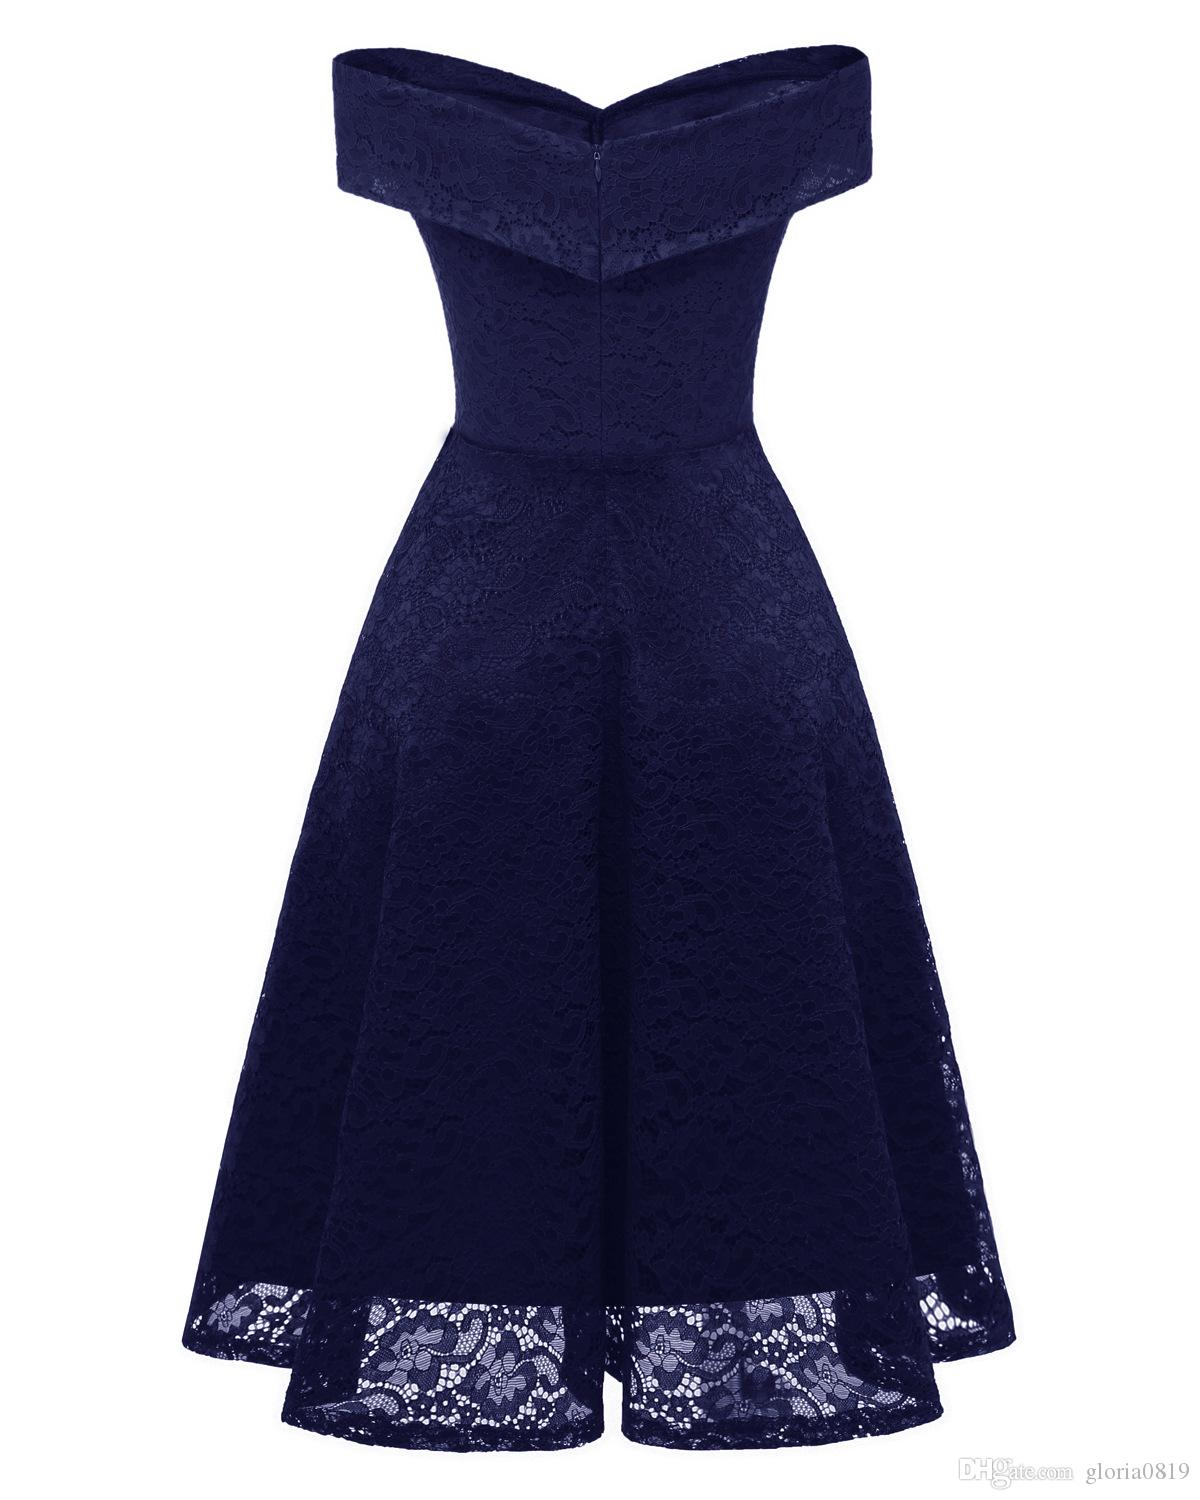 Navy Blue Women Dresses Off Shoulder 2019 Cap Sleeves Knee Length V neck Midi Lace Skater Dresses for Women Prom Party Birthday Holiday